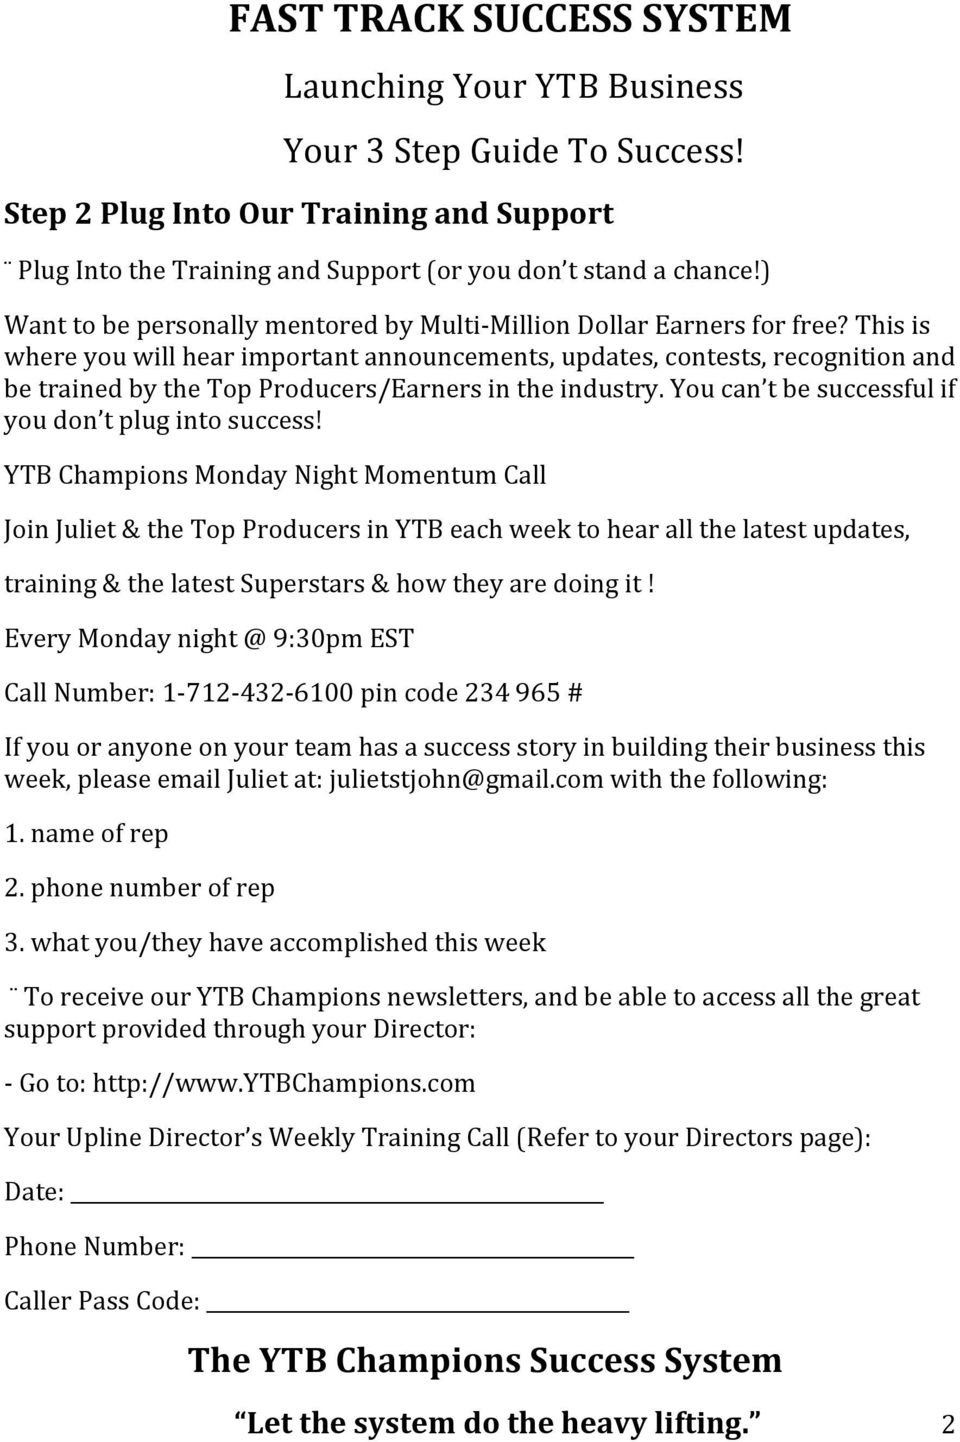 YTB Champions Monday Night Momentum Call Join Juliet & the Top Producers in YTB each week to hear all the latest updates, training & the latest Superstars & how they are doing it!